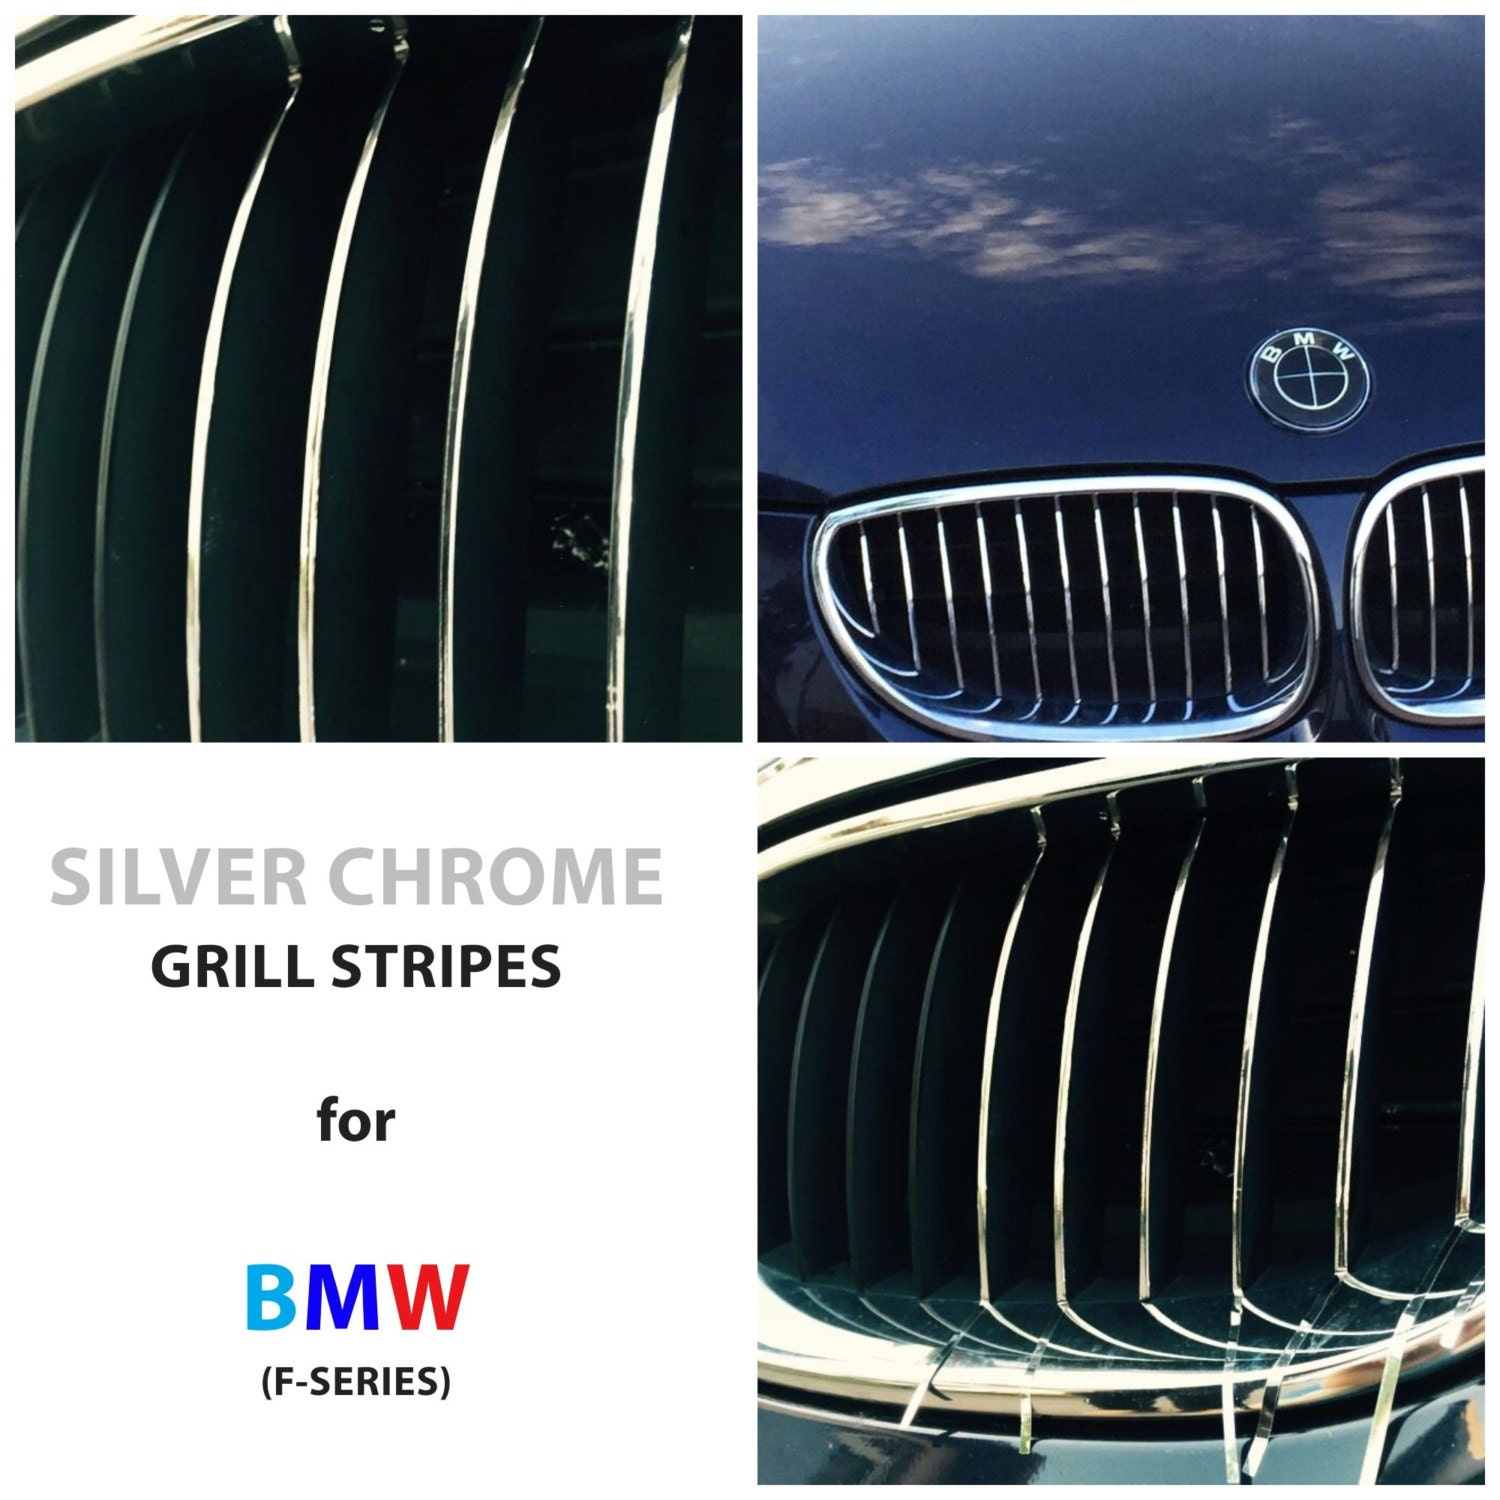 BMW Kidney Grill Grille Stripes Silver Chrome M Sport Sticker - Bmw grille stripe decals